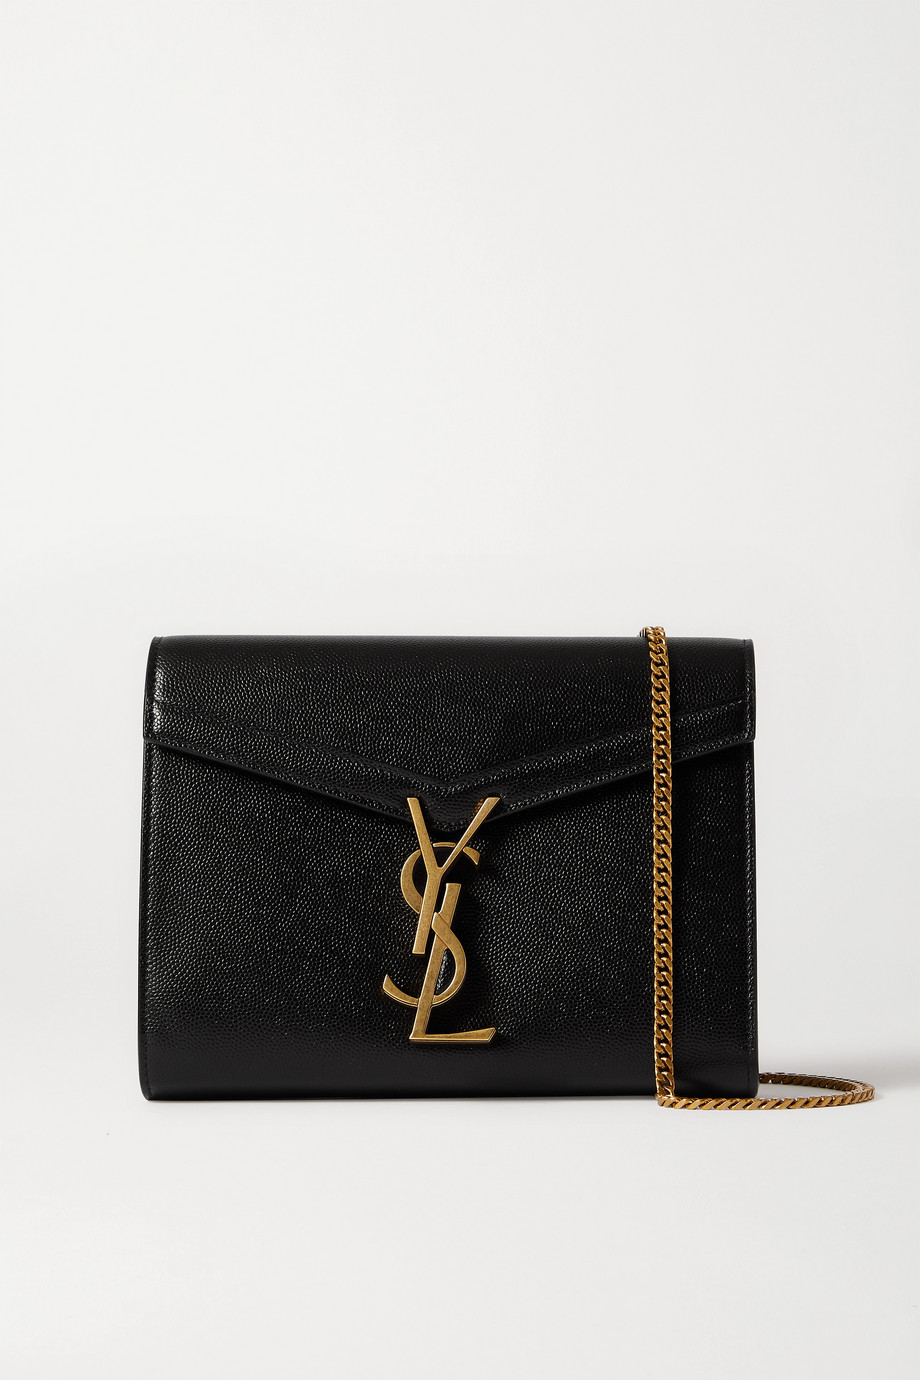 SAINT LAURENT Cassandra textured-leather shoulder bag